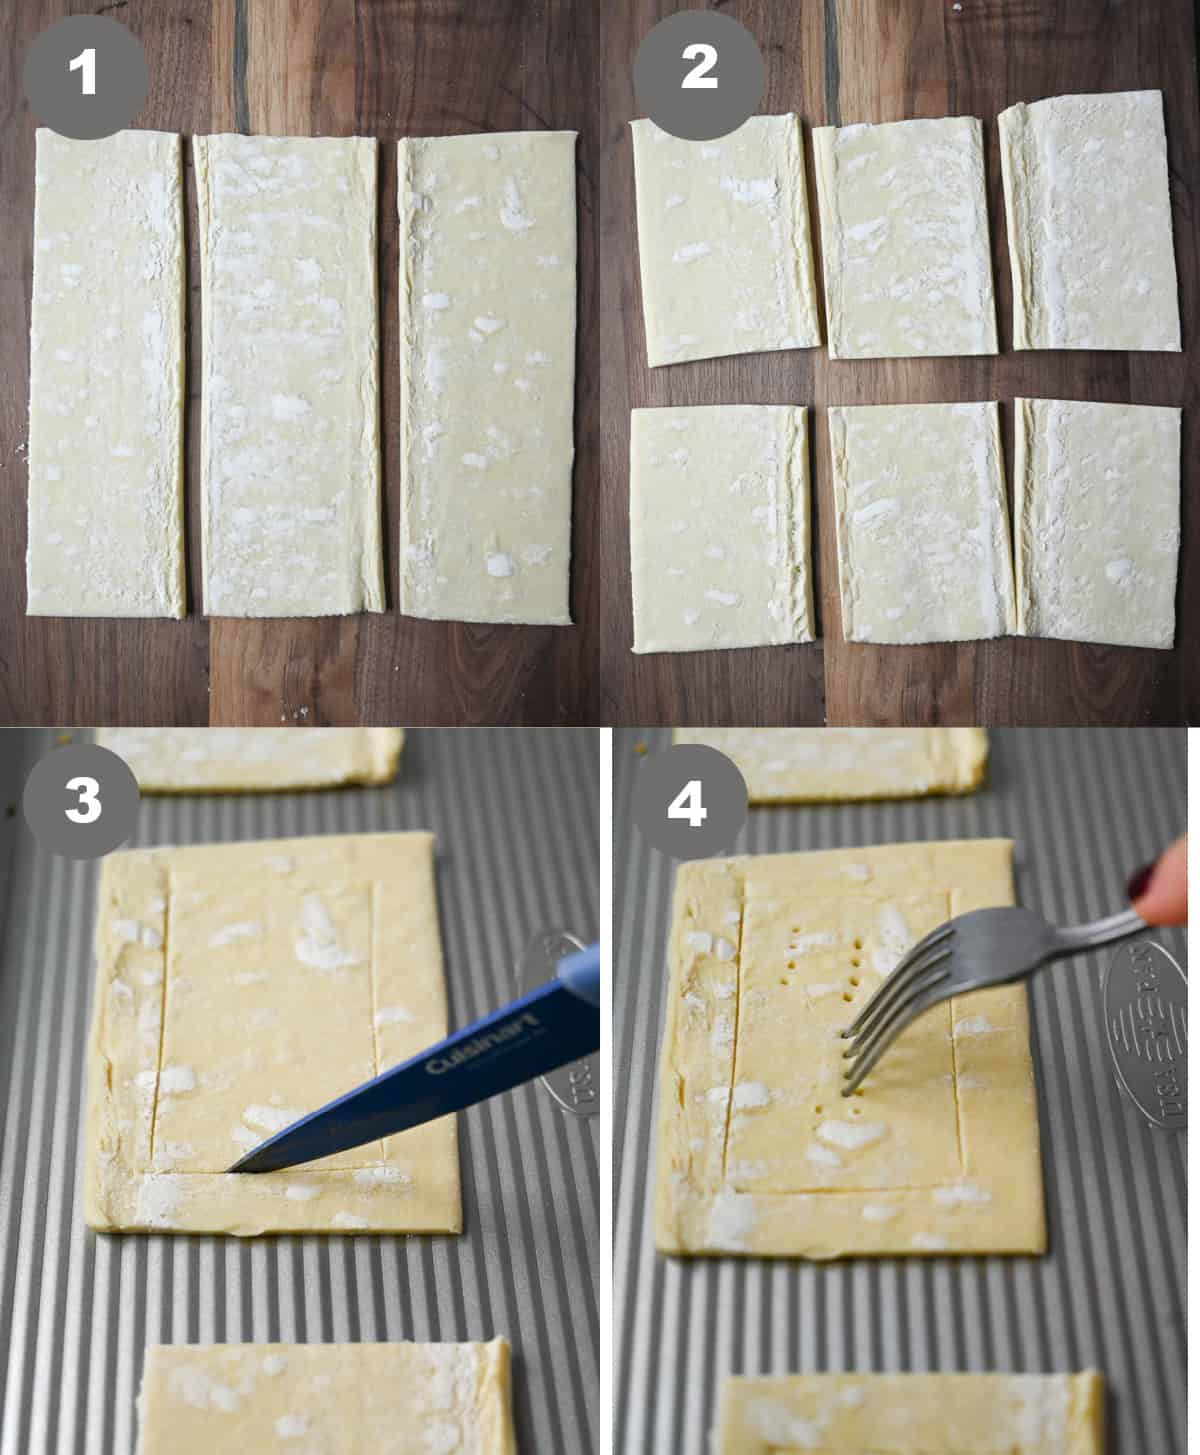 Four process photos. puff pastry cut into three strips. Secone one, three strips cut into six pastry aquares. Third one, a small square being scored in the center. Fourth one, a fork poking holes in the center square.